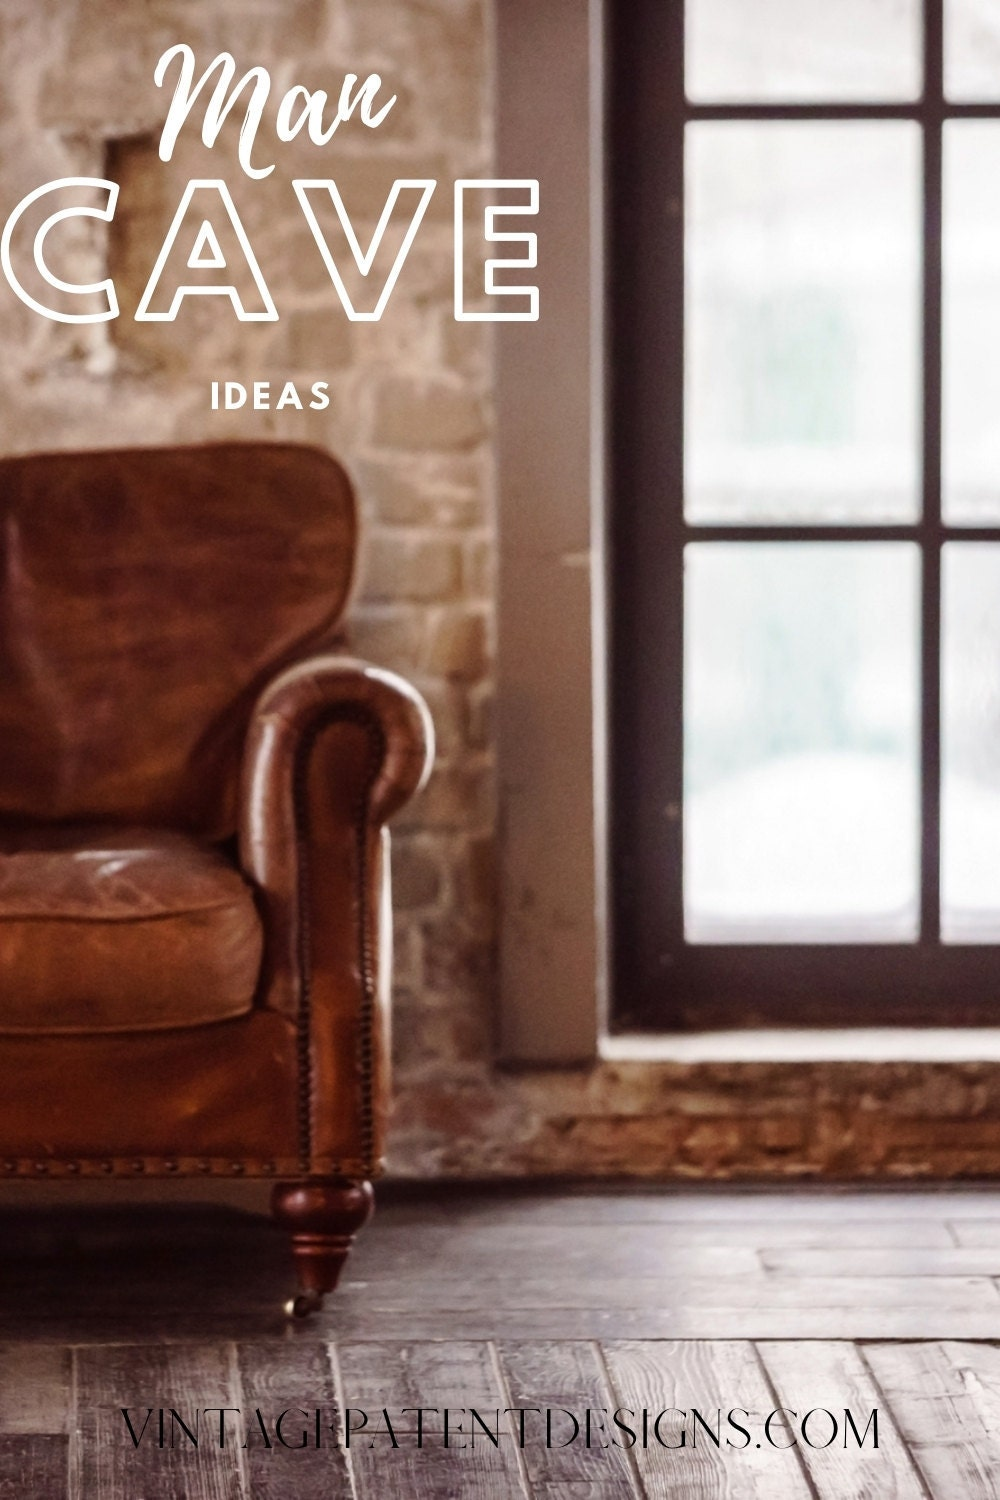 man cave ideas - even if its only a chair